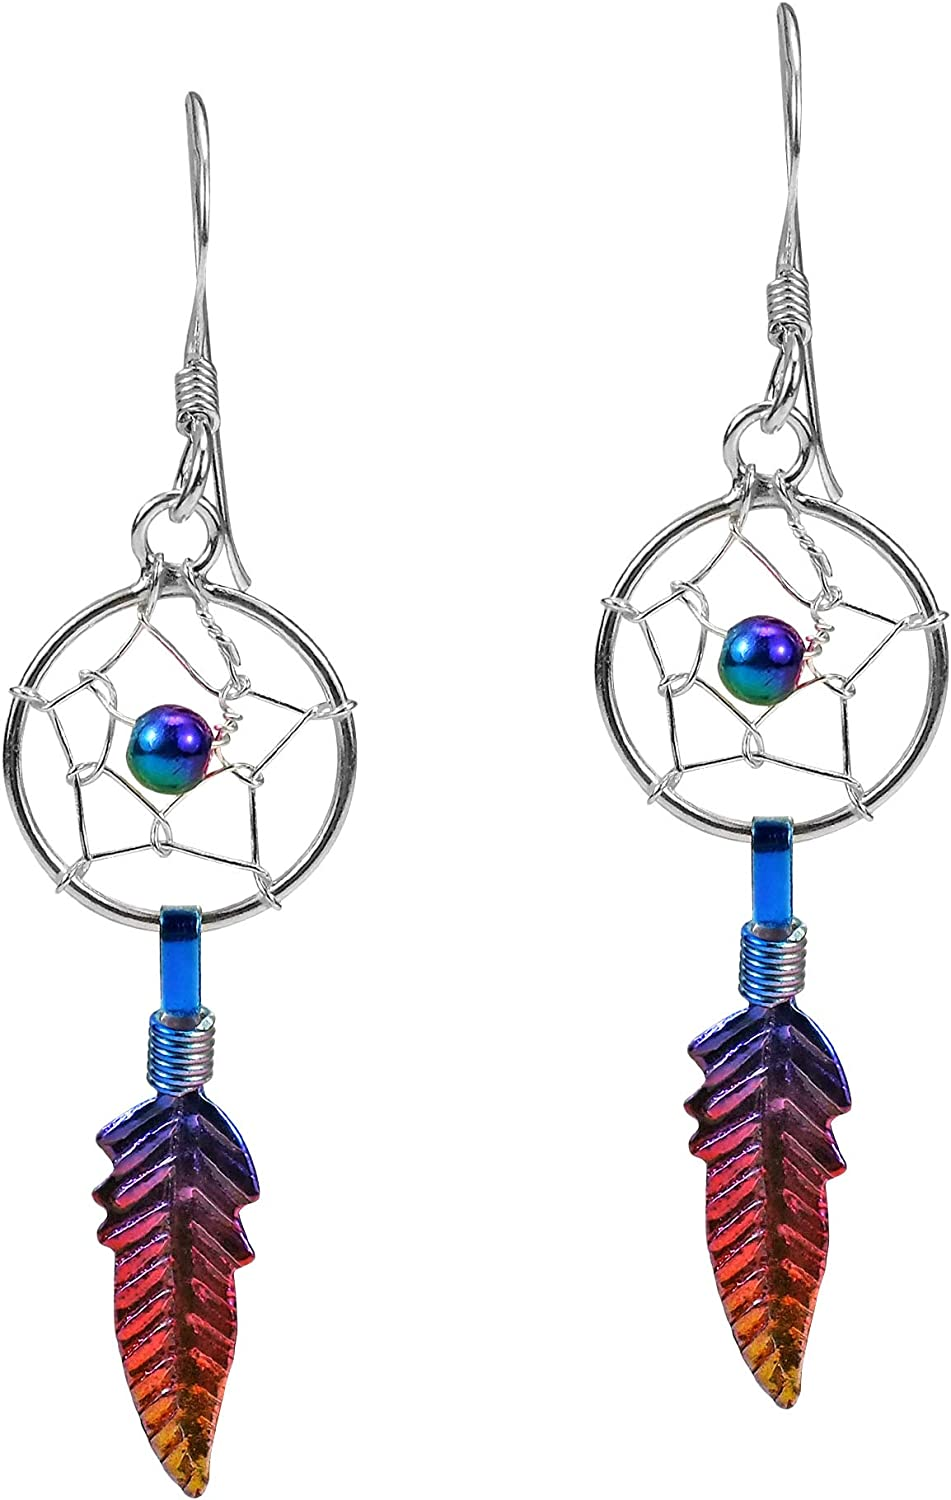 Earrings dreamcatcher hooks or clips dream catcher spiral multicolor Rainbow and colorful beads